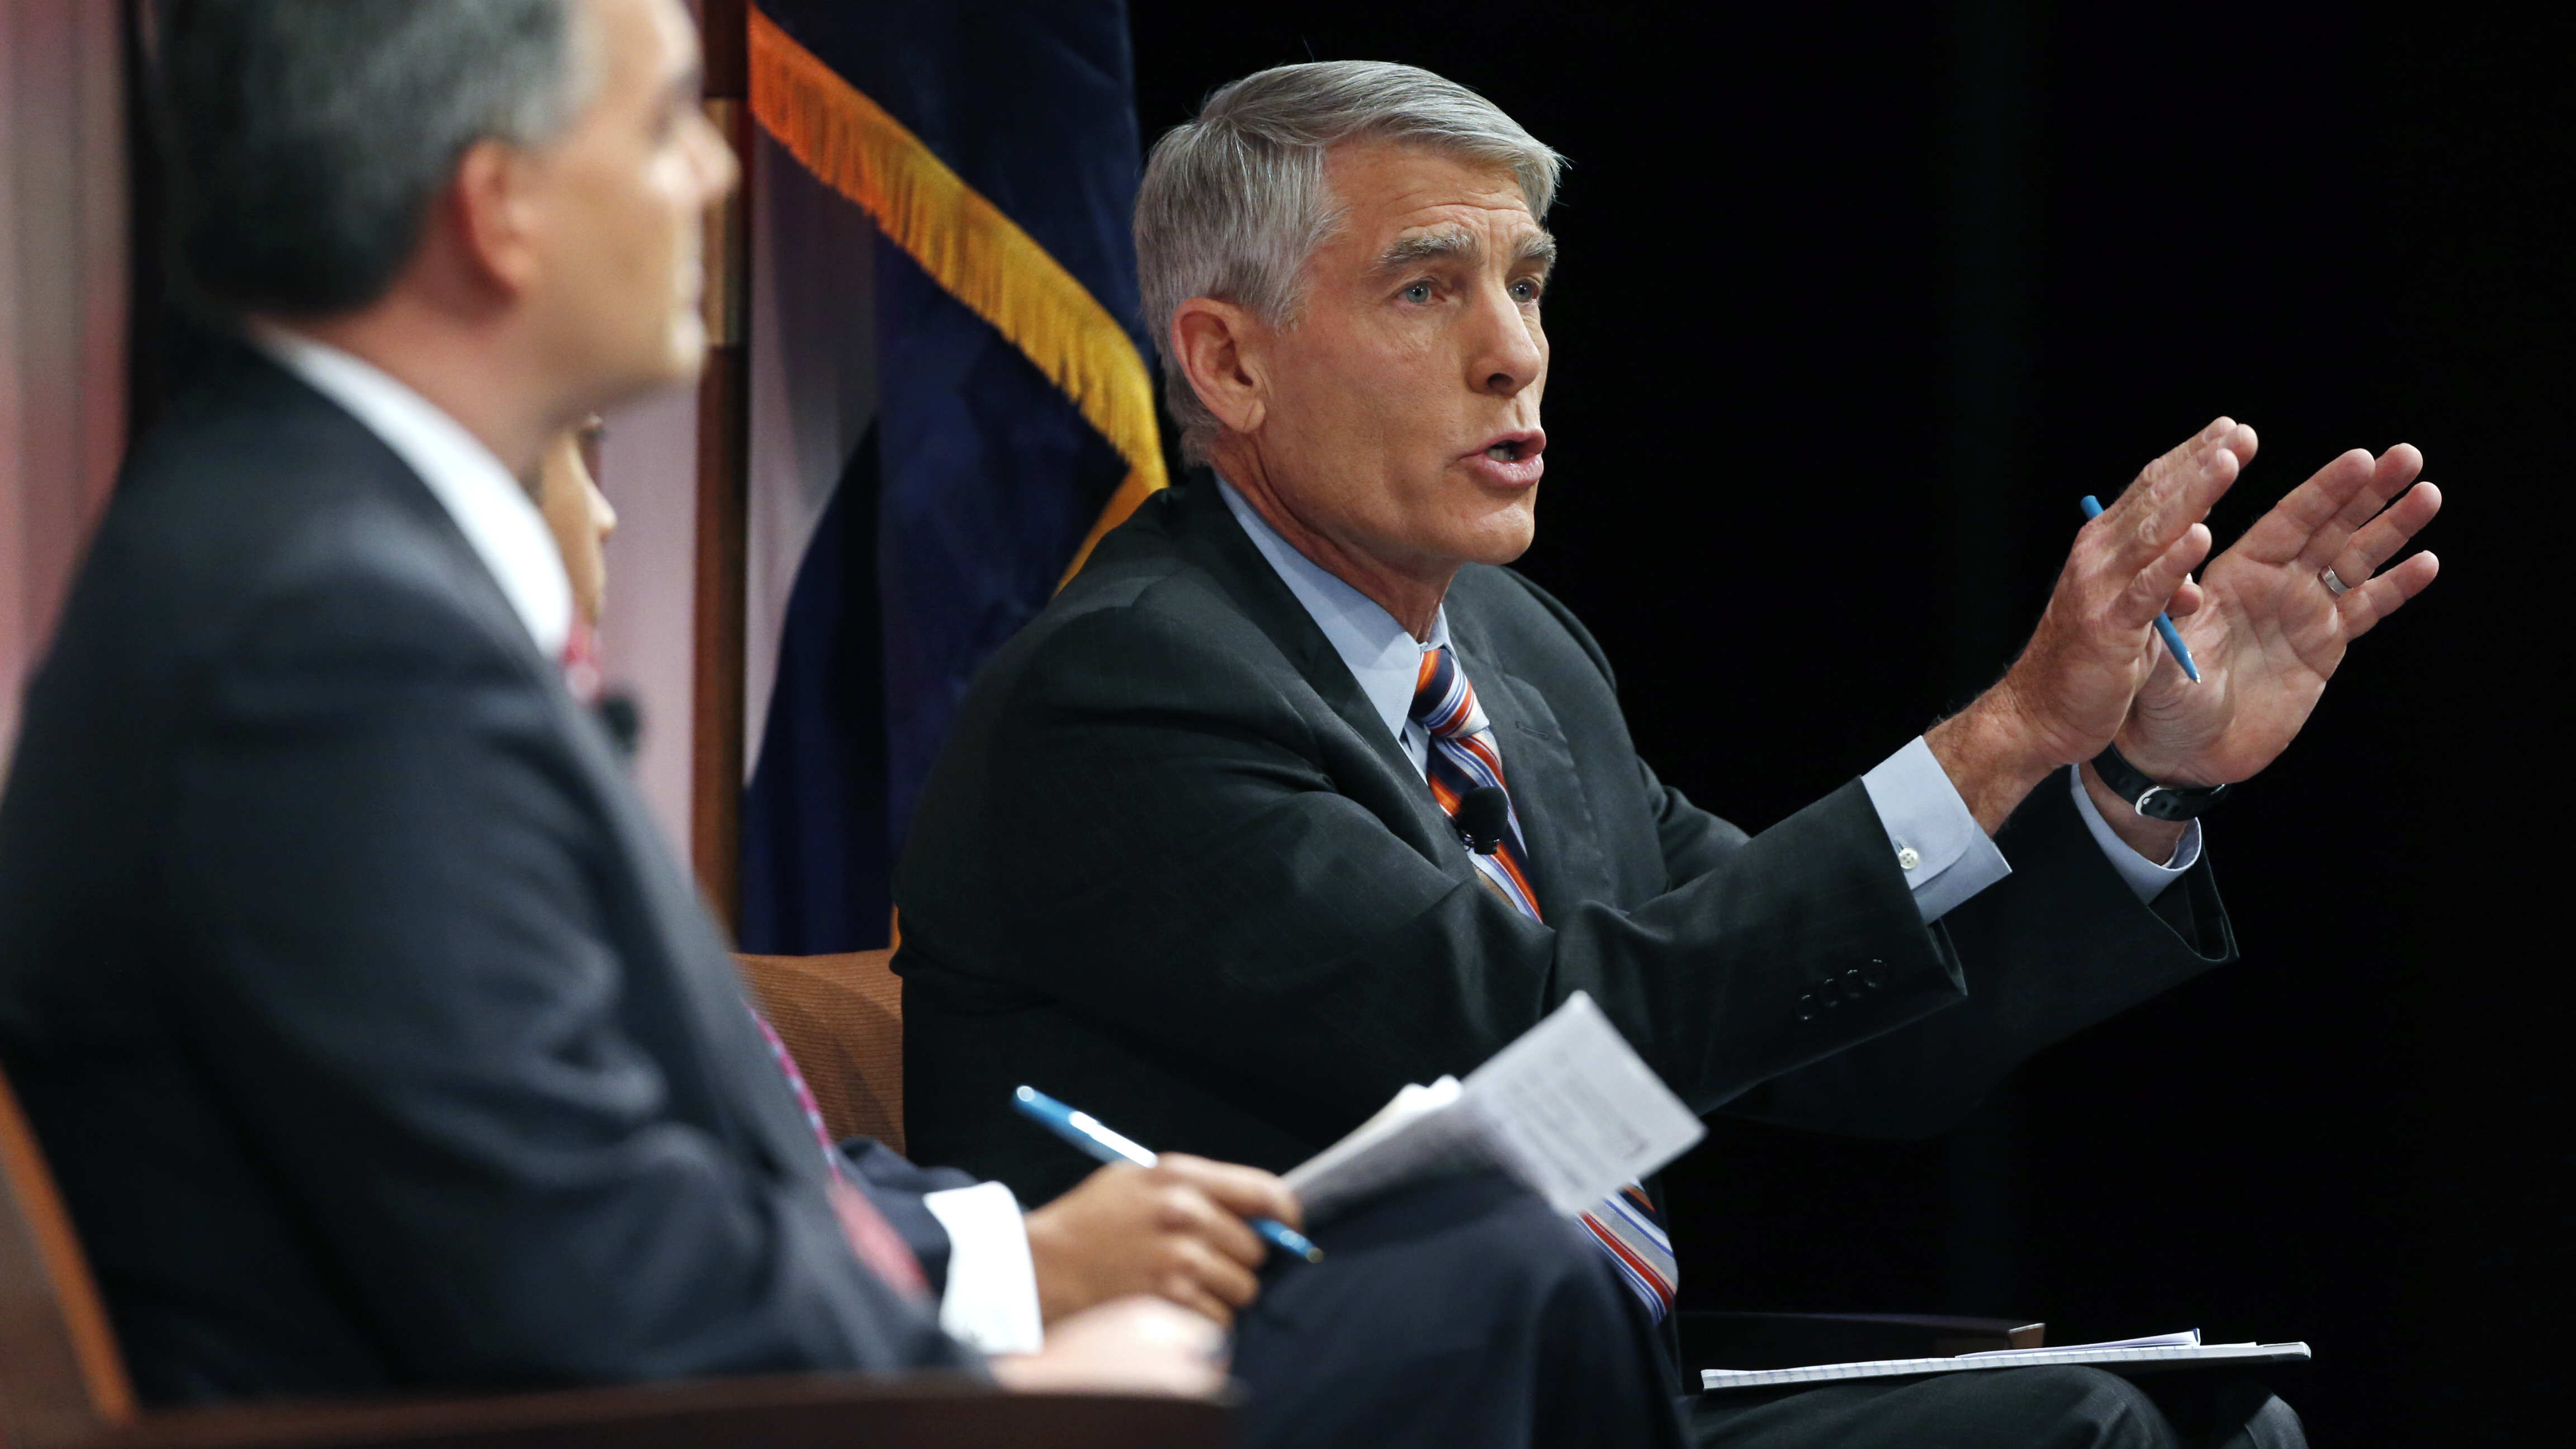 Photo: Sen. Mark Udall